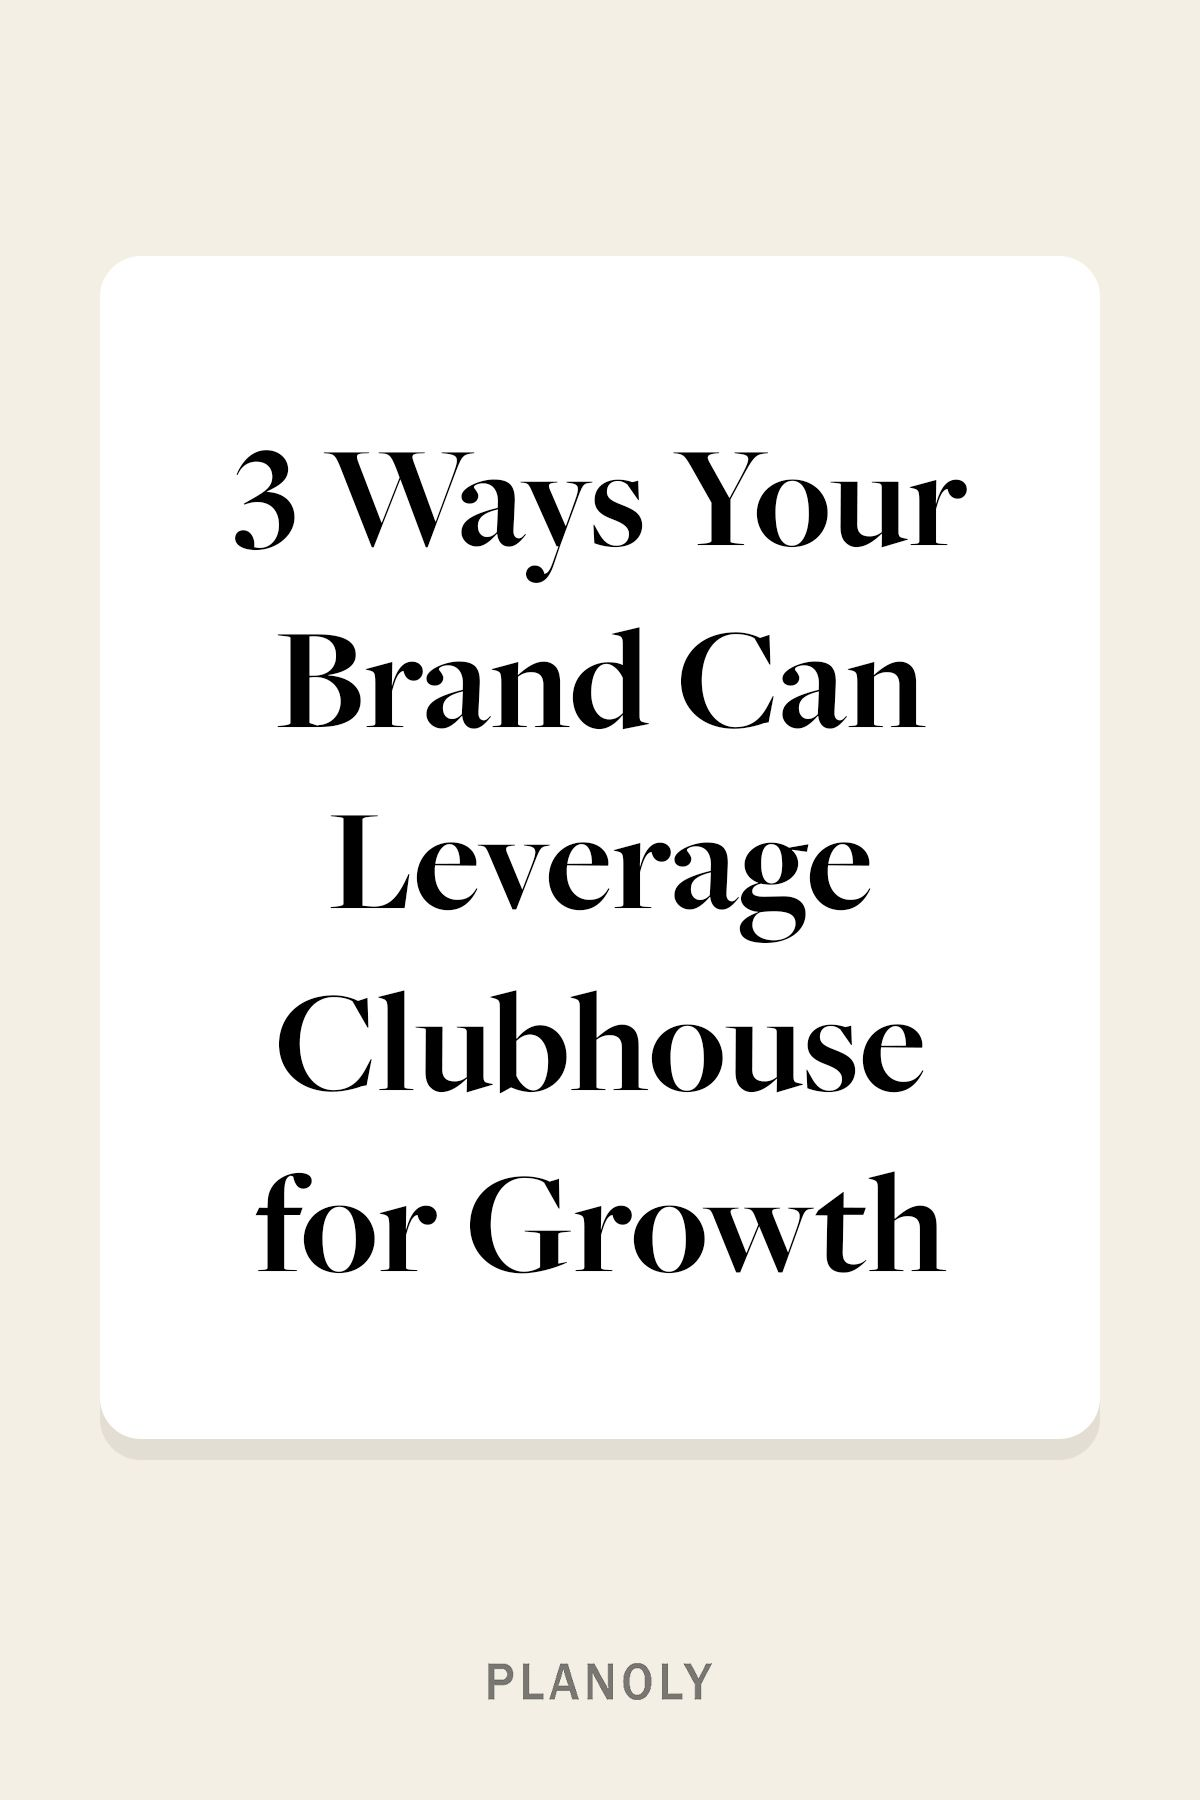 PLANOLY - Blog - What is Clubhouse - Vertical - 1